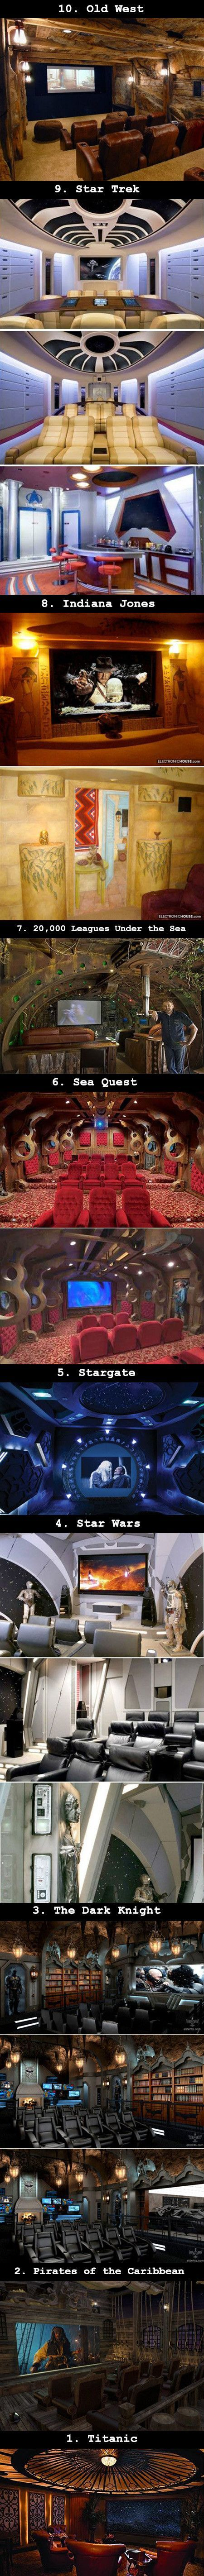 home theater ideas to make  cozy heaven in your basement also best images on pinterest rh